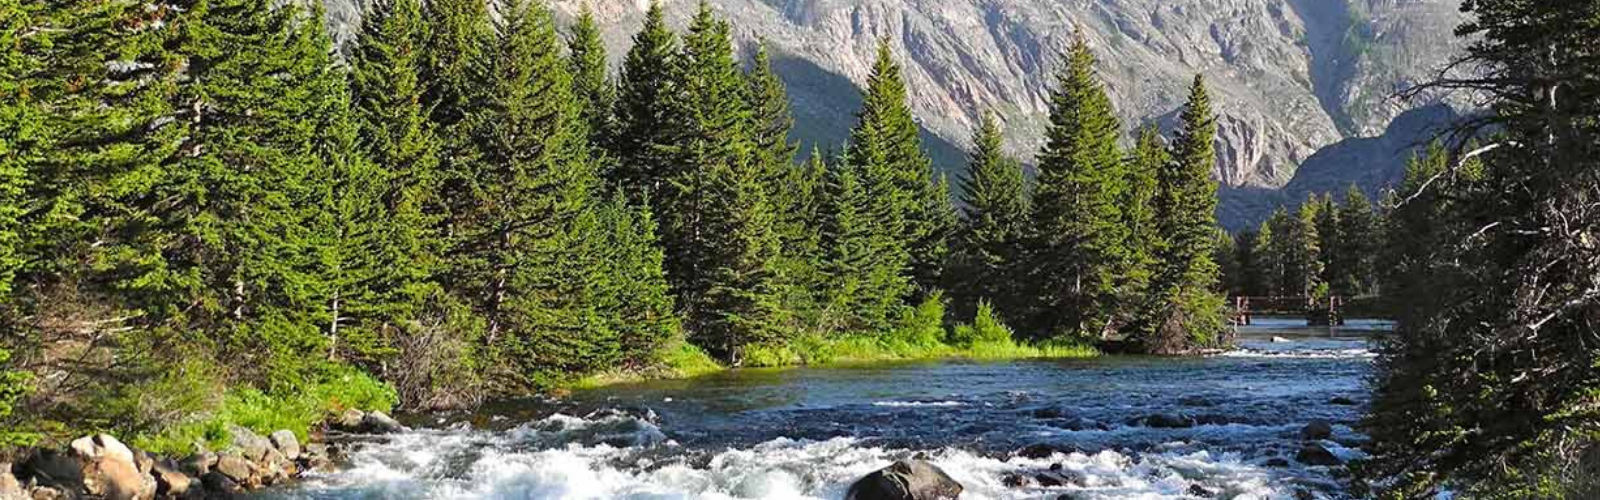 East-Rosebud-Creek-MT-credit-Michael-Fiebig-header